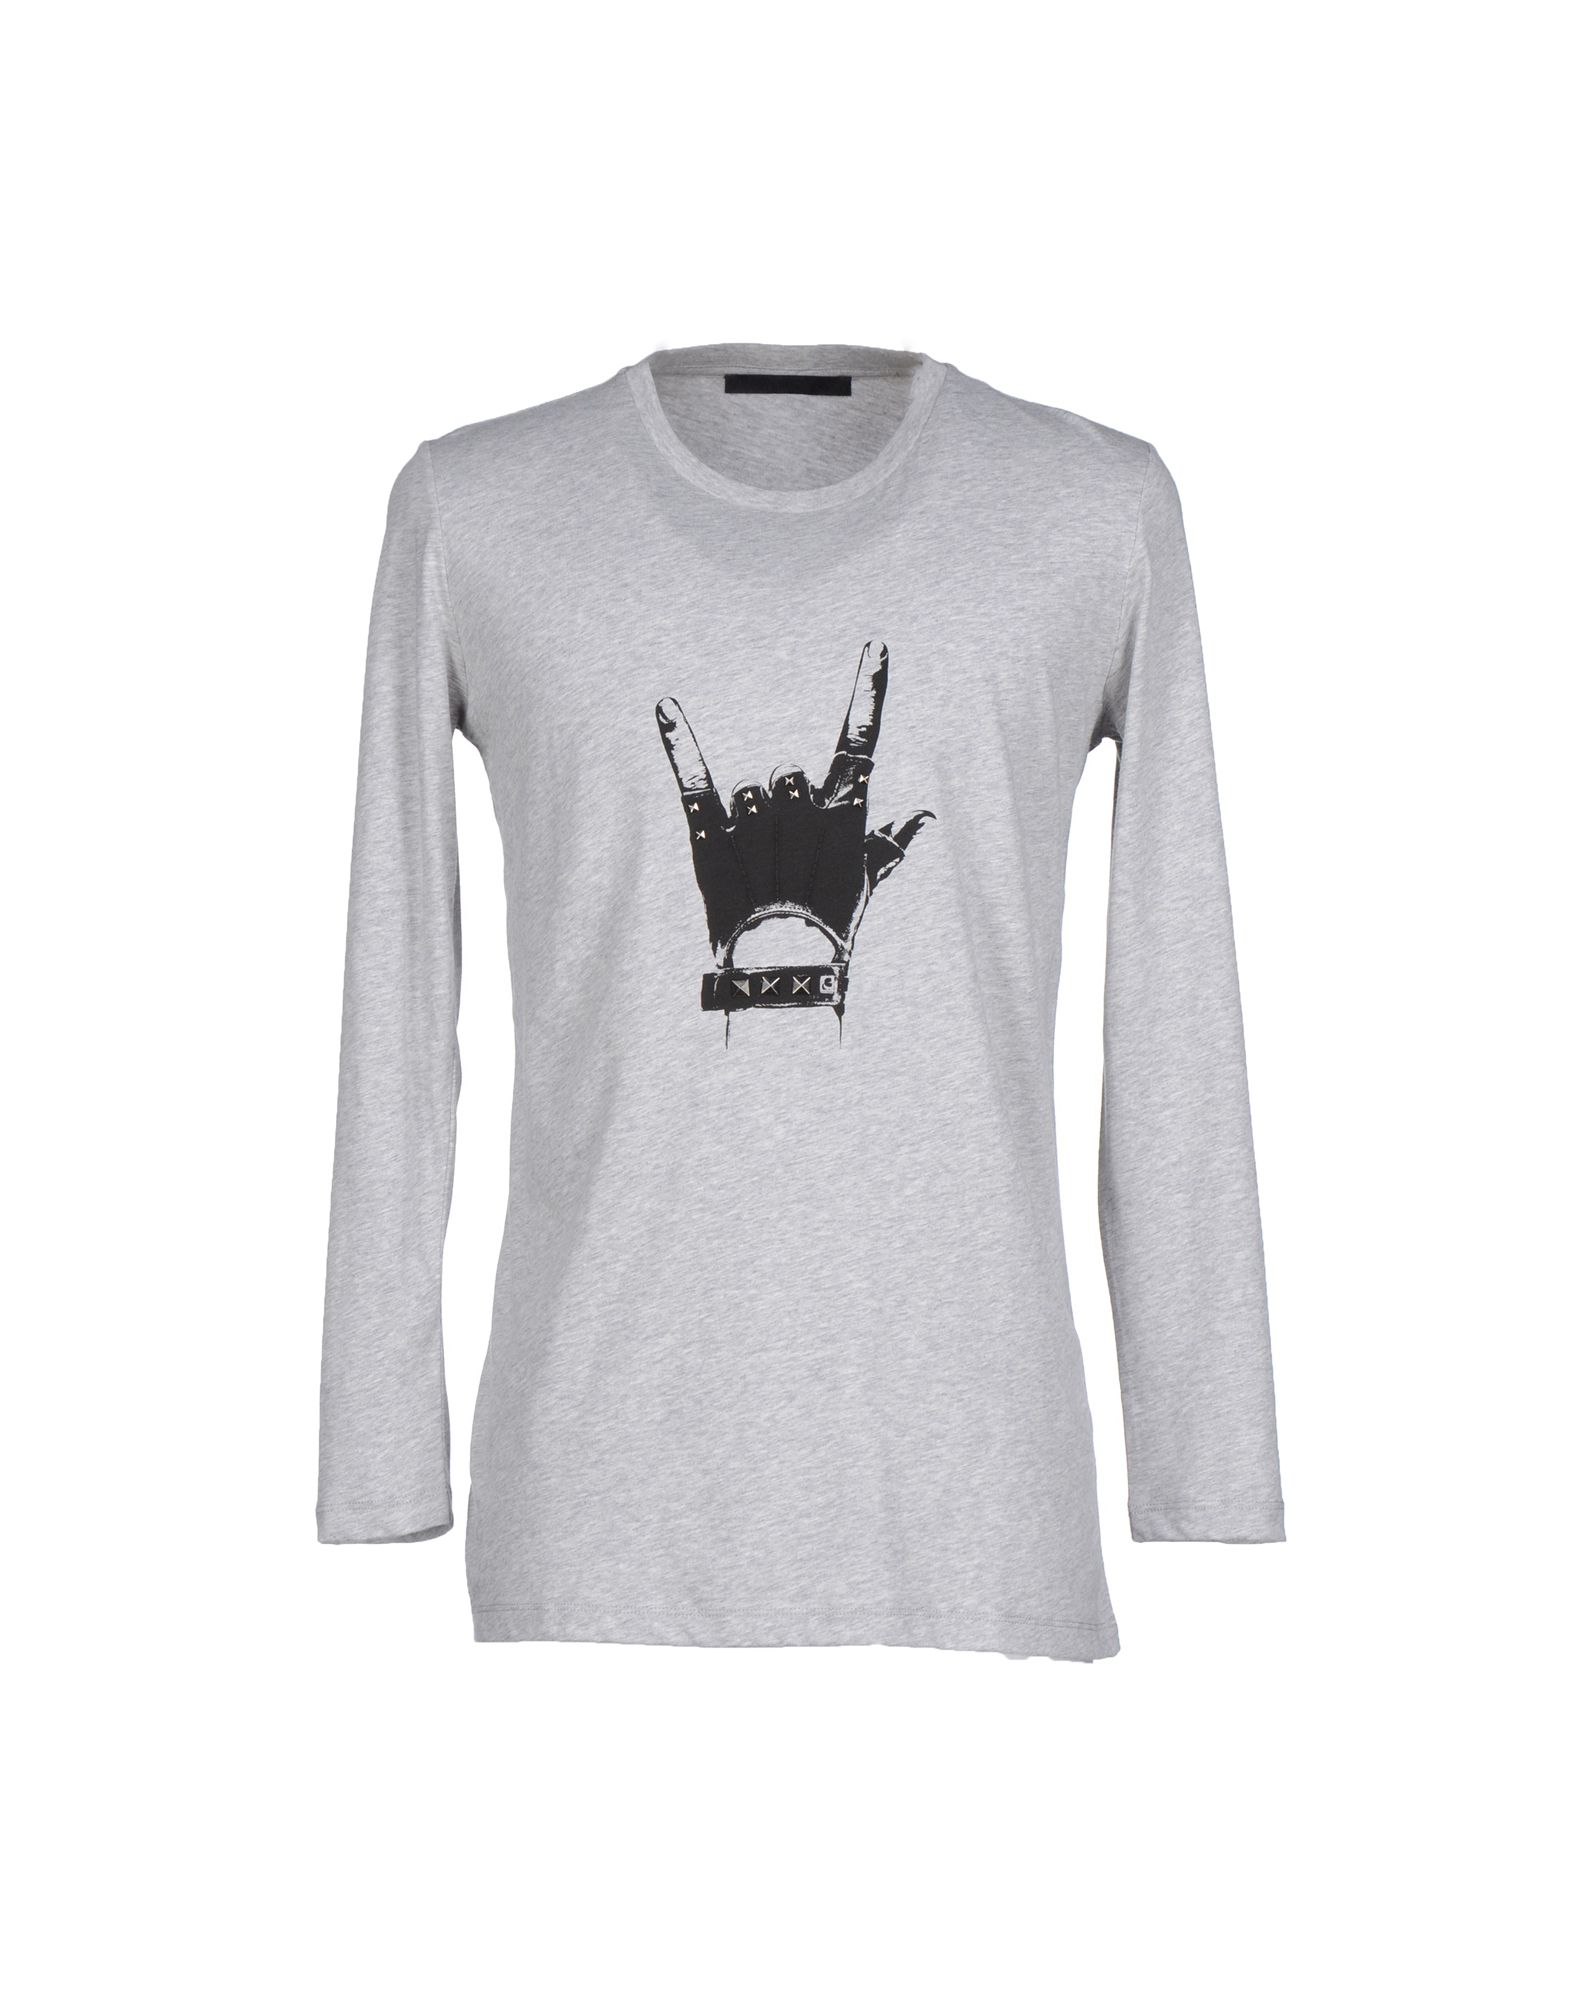 karl lagerfeld t shirt in gray for men lyst. Black Bedroom Furniture Sets. Home Design Ideas